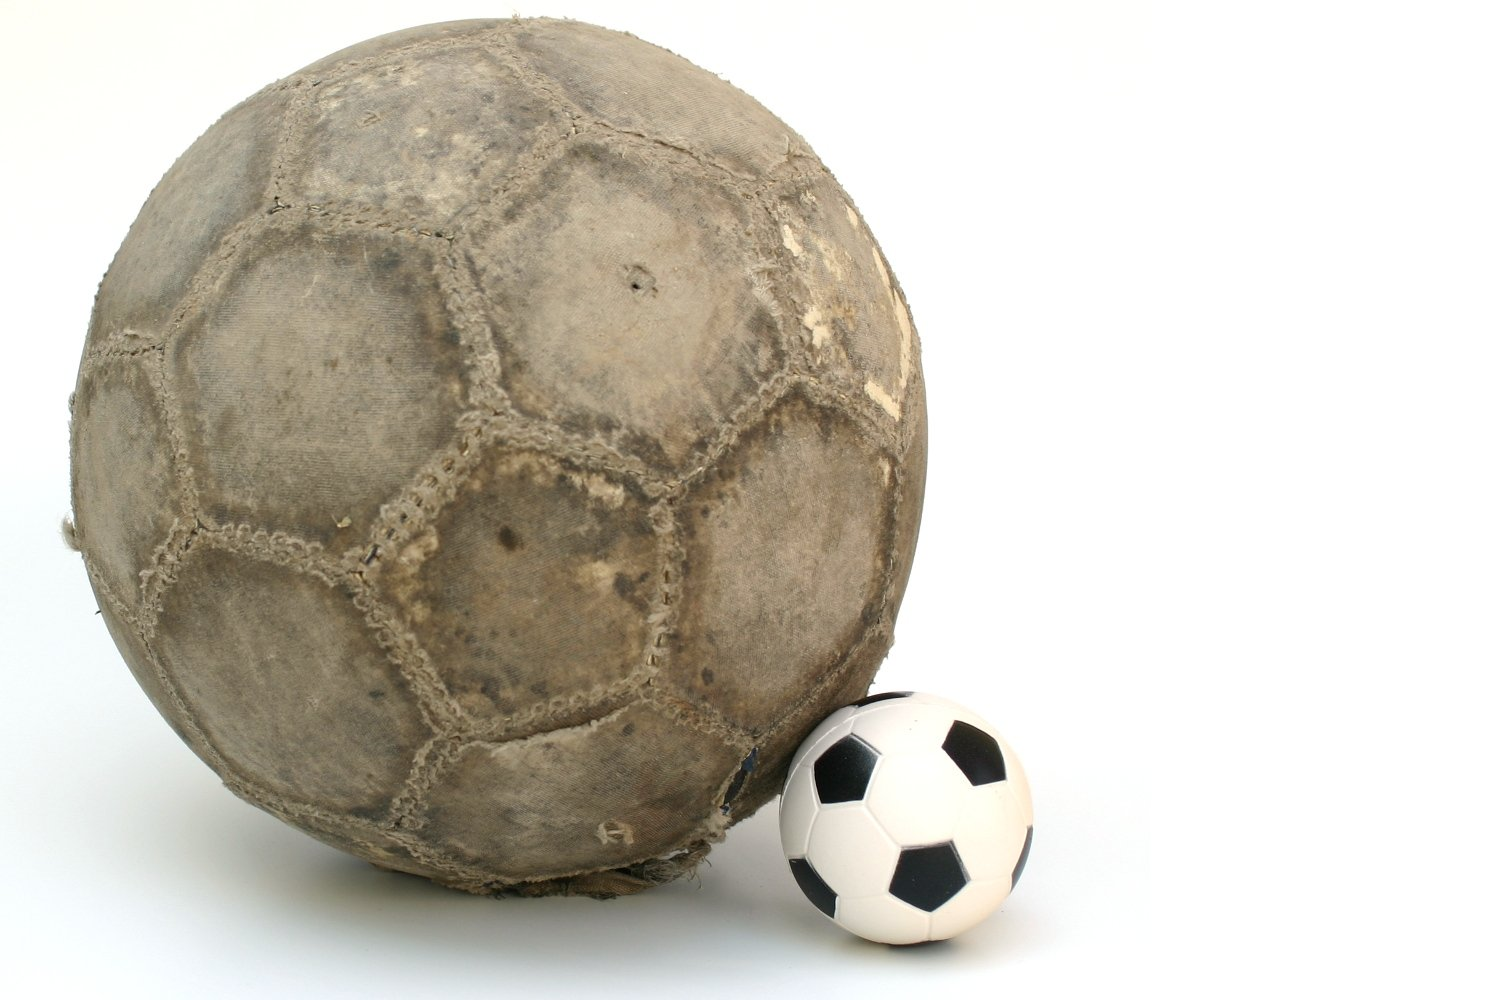 soccer balls, Activity, Shape, Leather, Leisure, HQ Photo